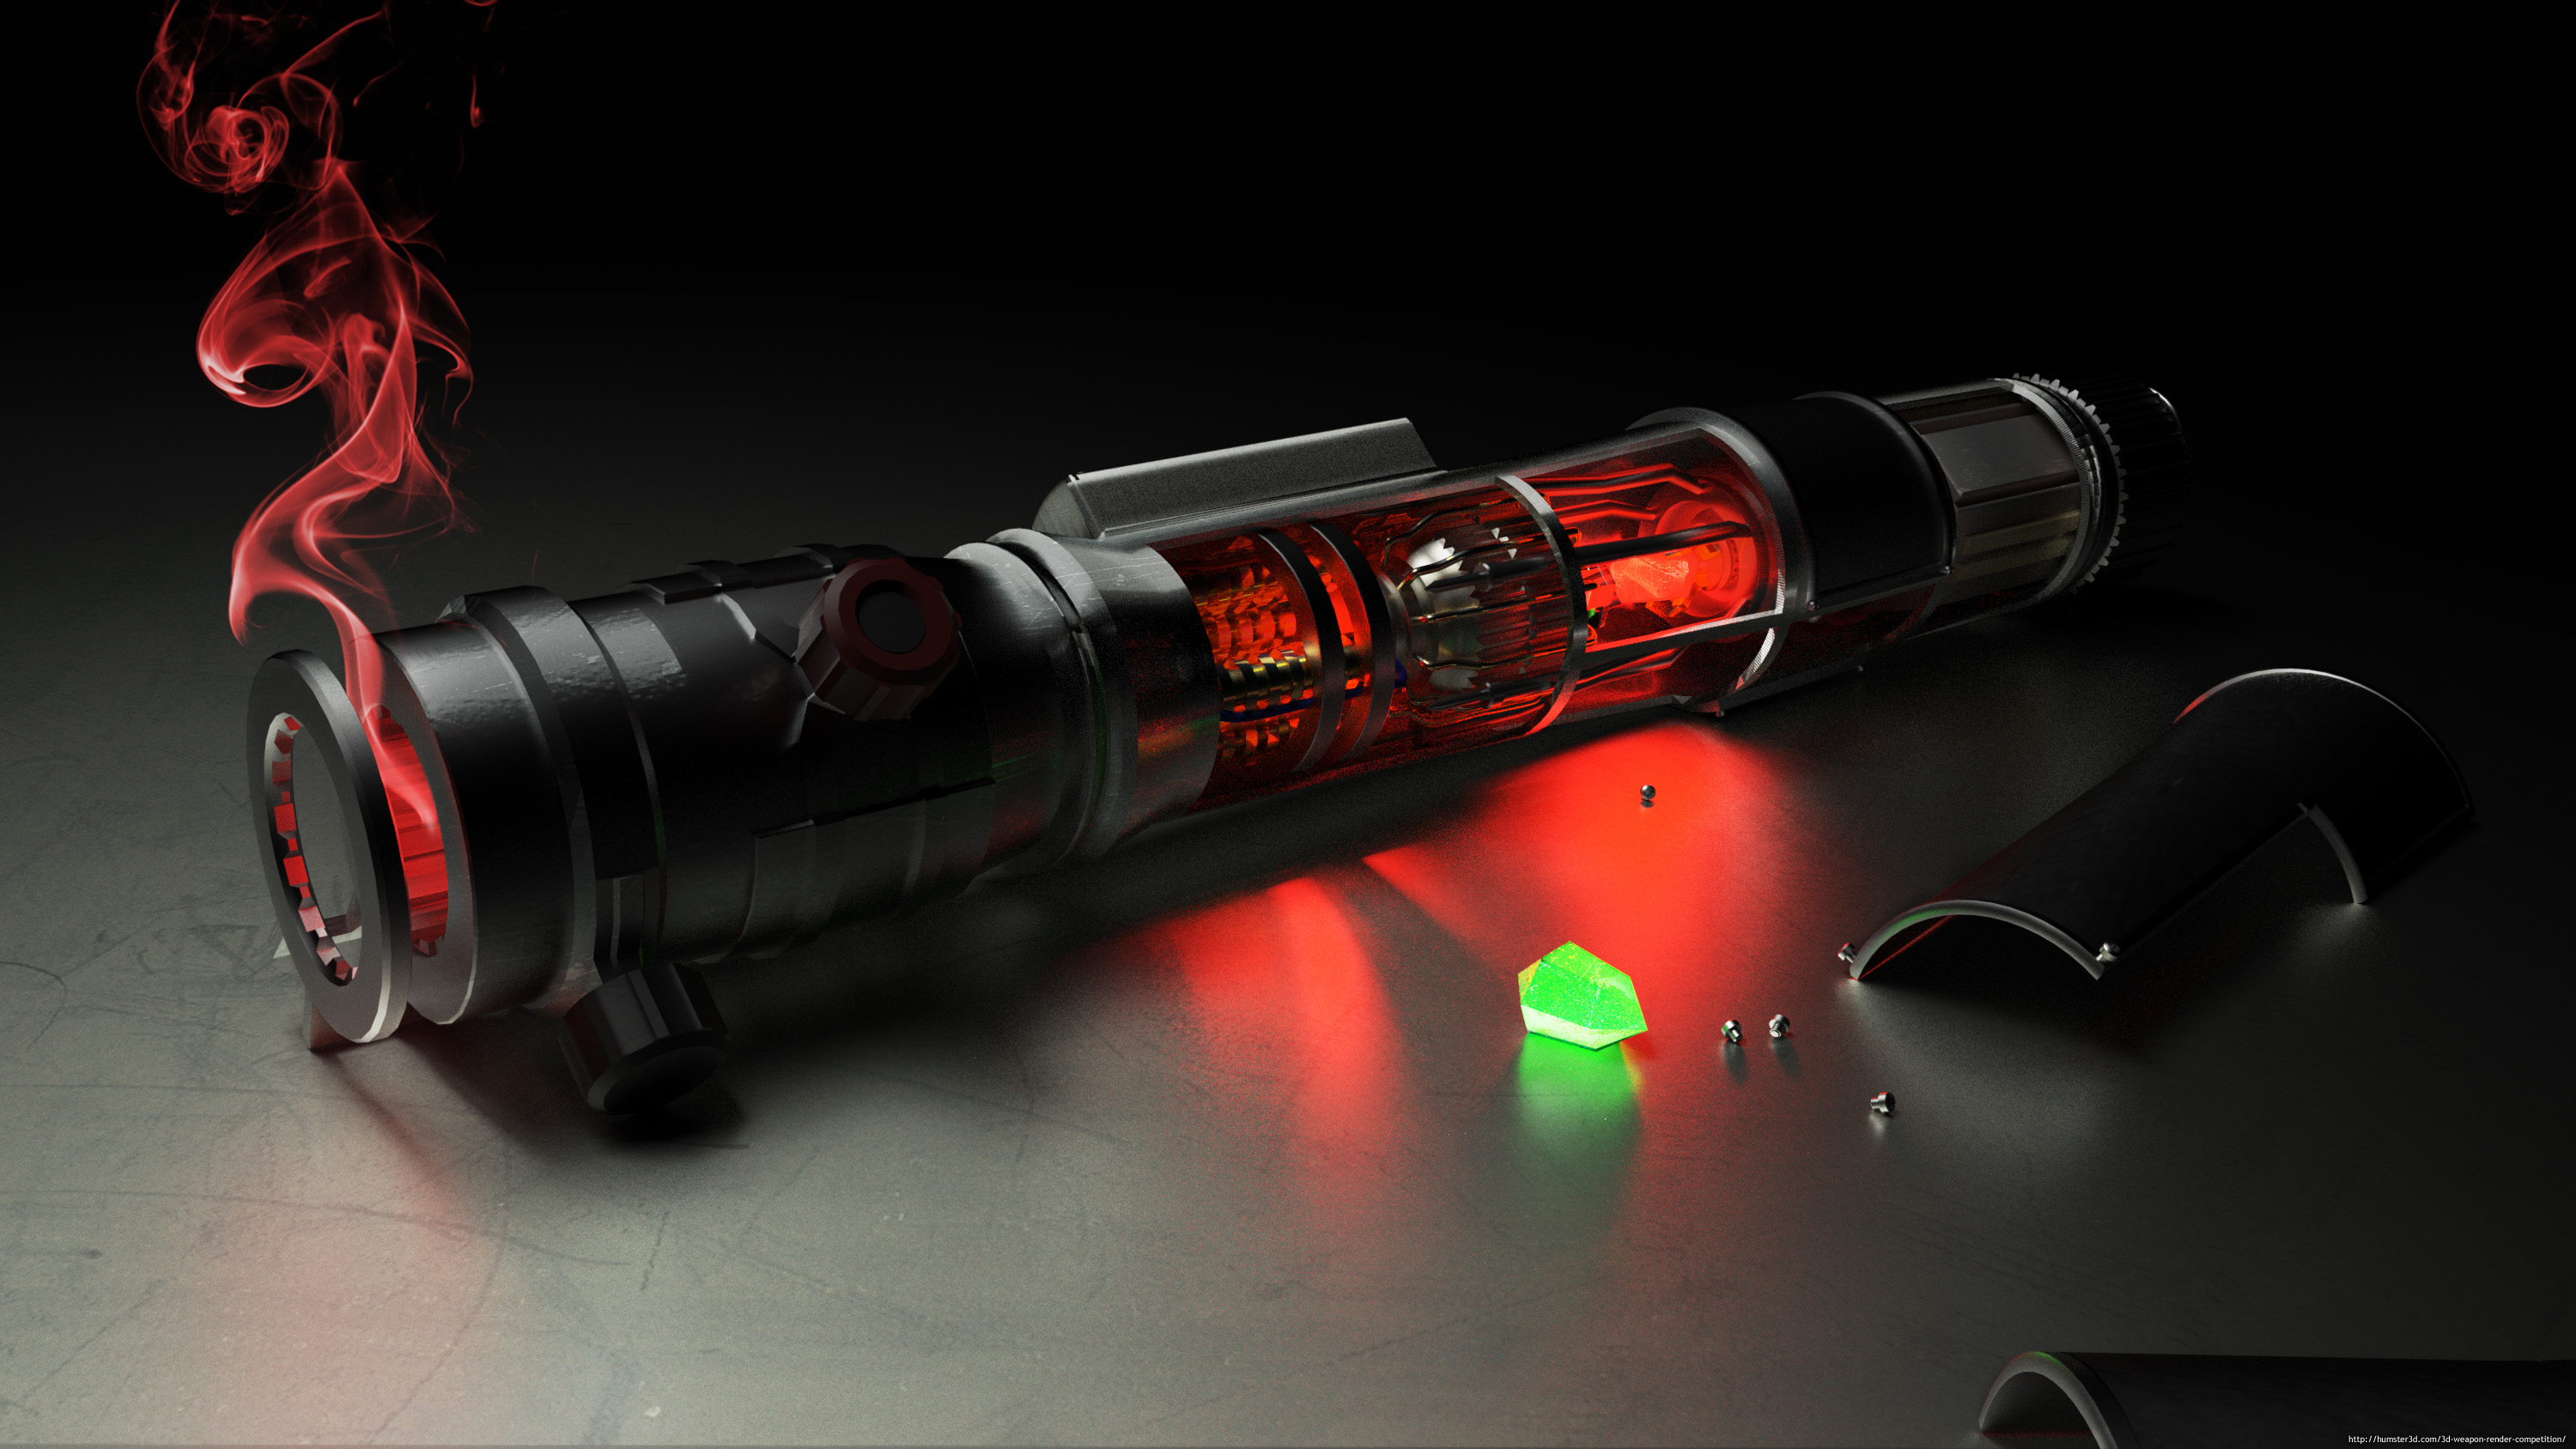 Lightsaber (change your crystal) 3d art